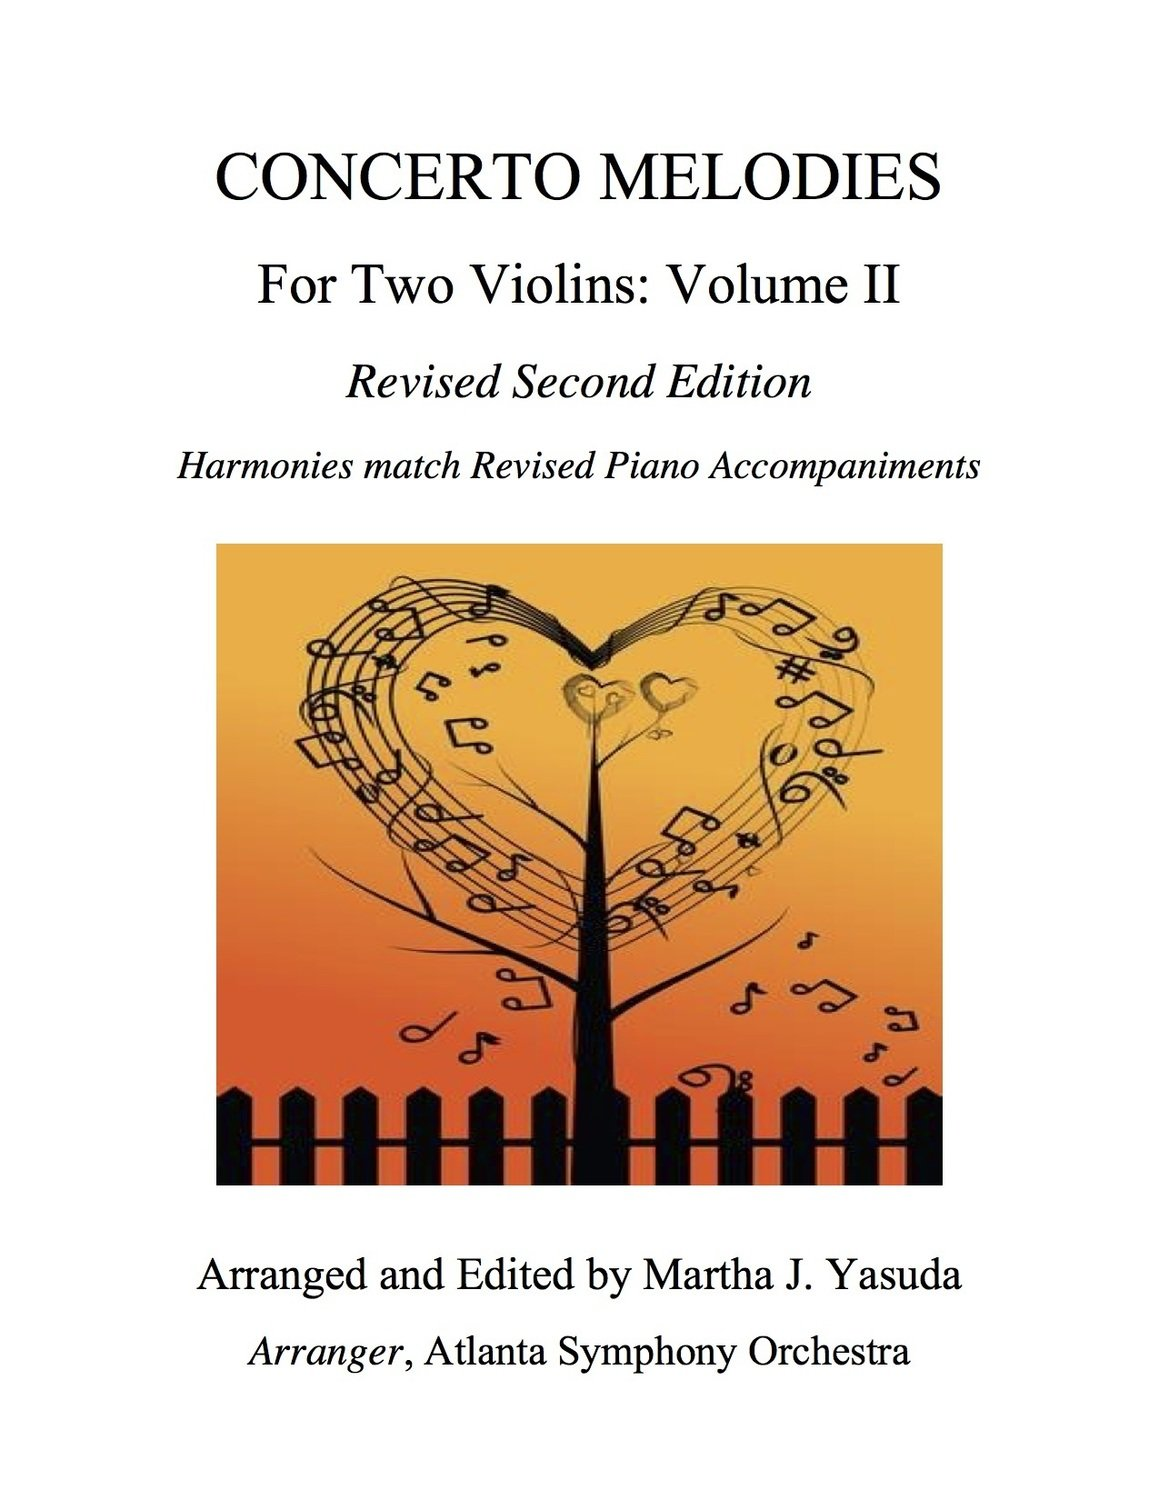 004 - Concerto Melodies For Two Violins, Volume II (Seitz #5, Bach Double & Bach a minor)